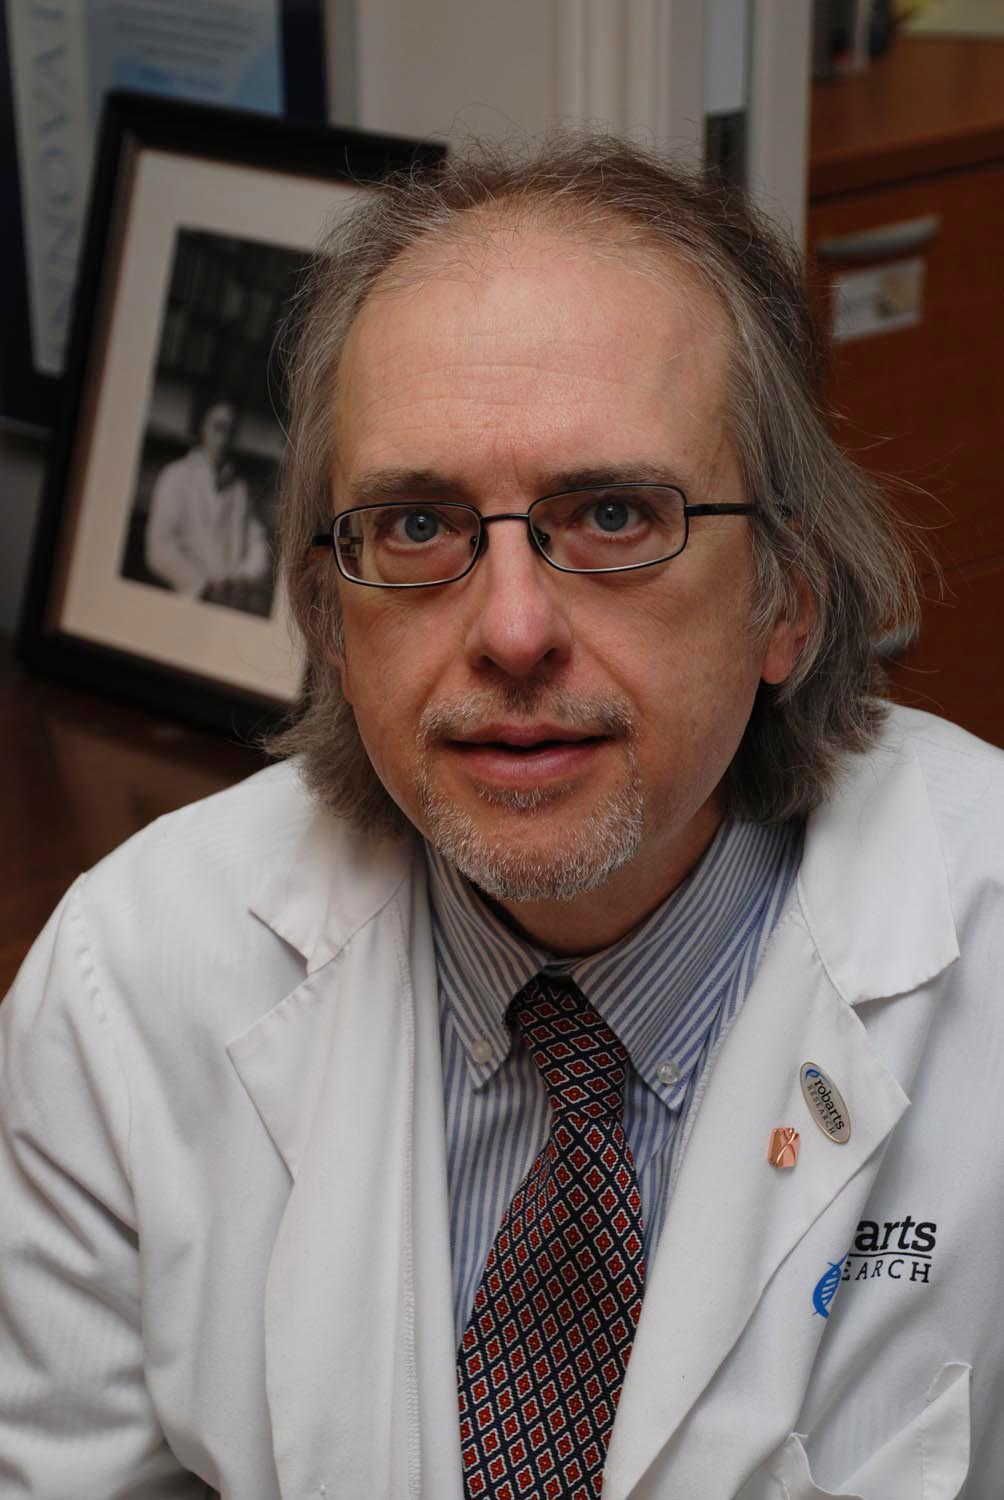 Photo of Dr. Robert Hegele, professor of Medicine and Biochemistry at the University of Western Ontario in Canada.